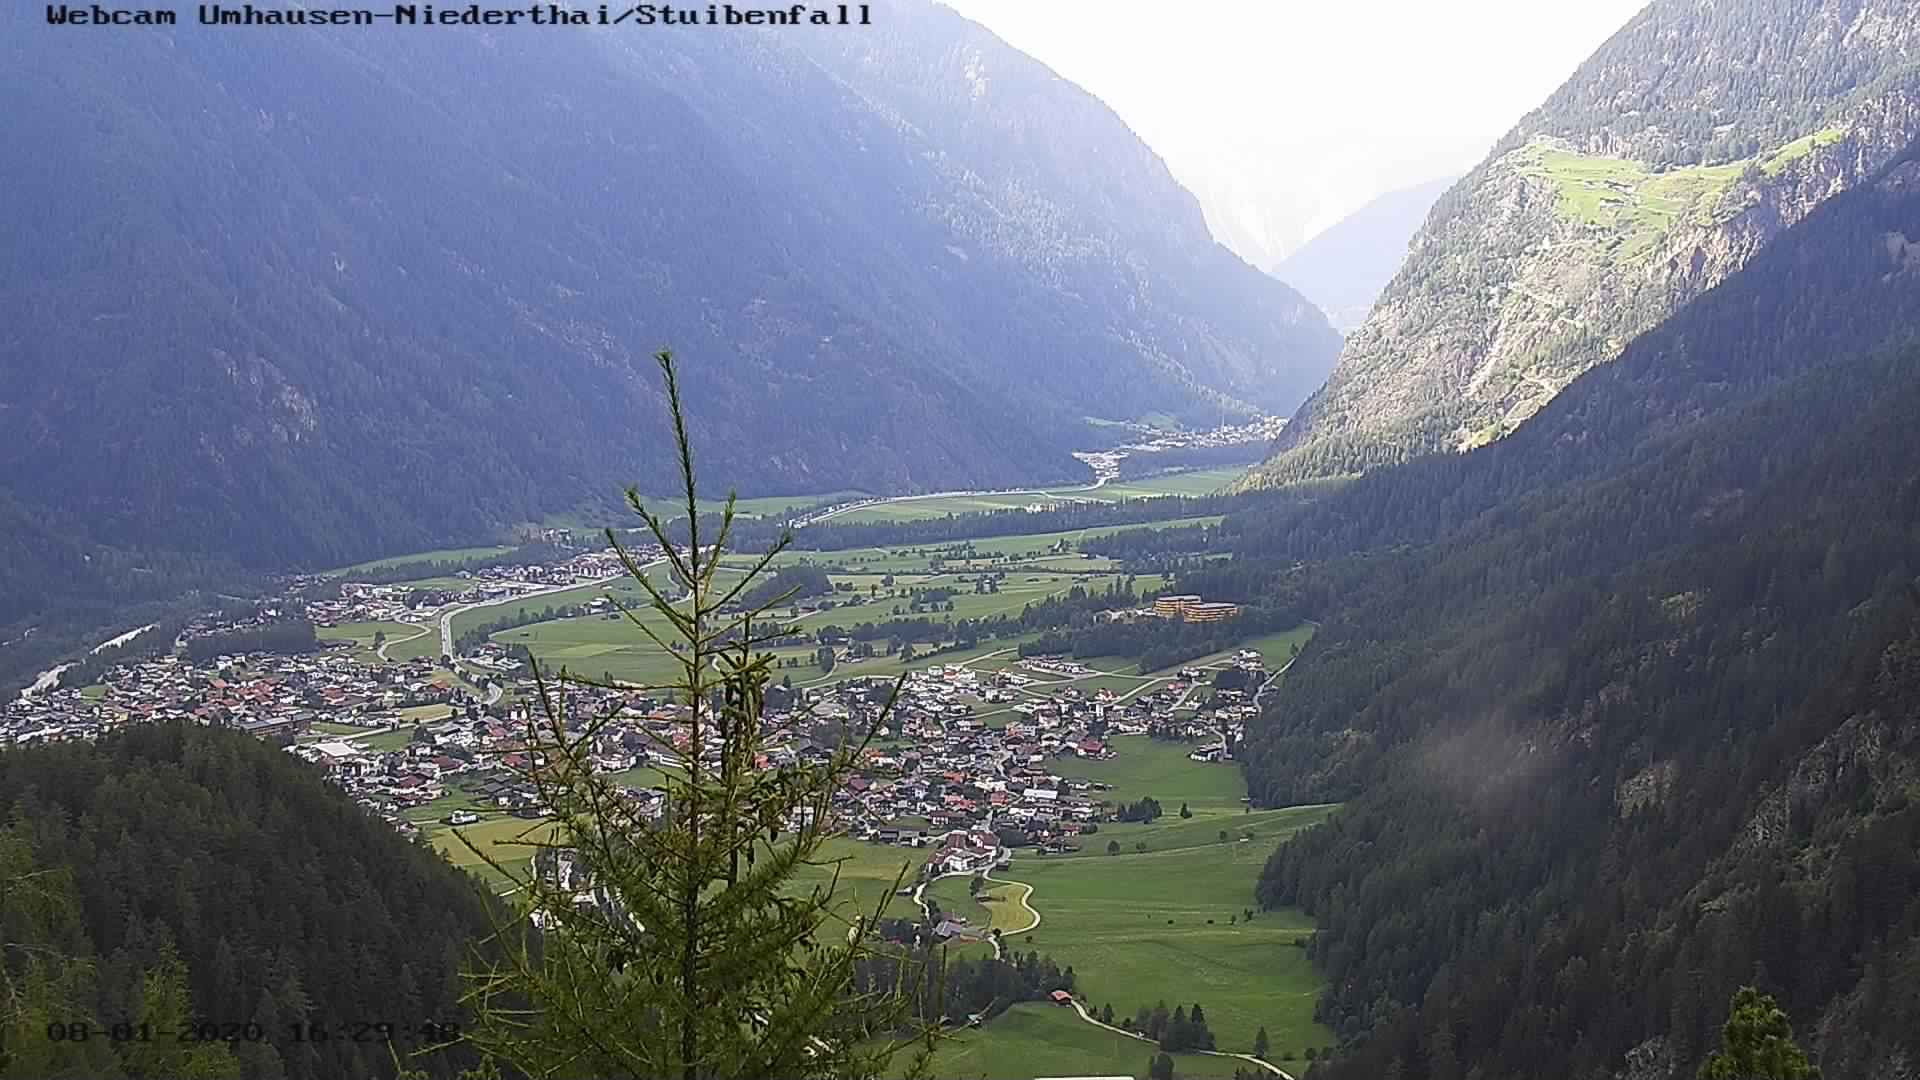 Webcam Stuibenfall/Umhausen